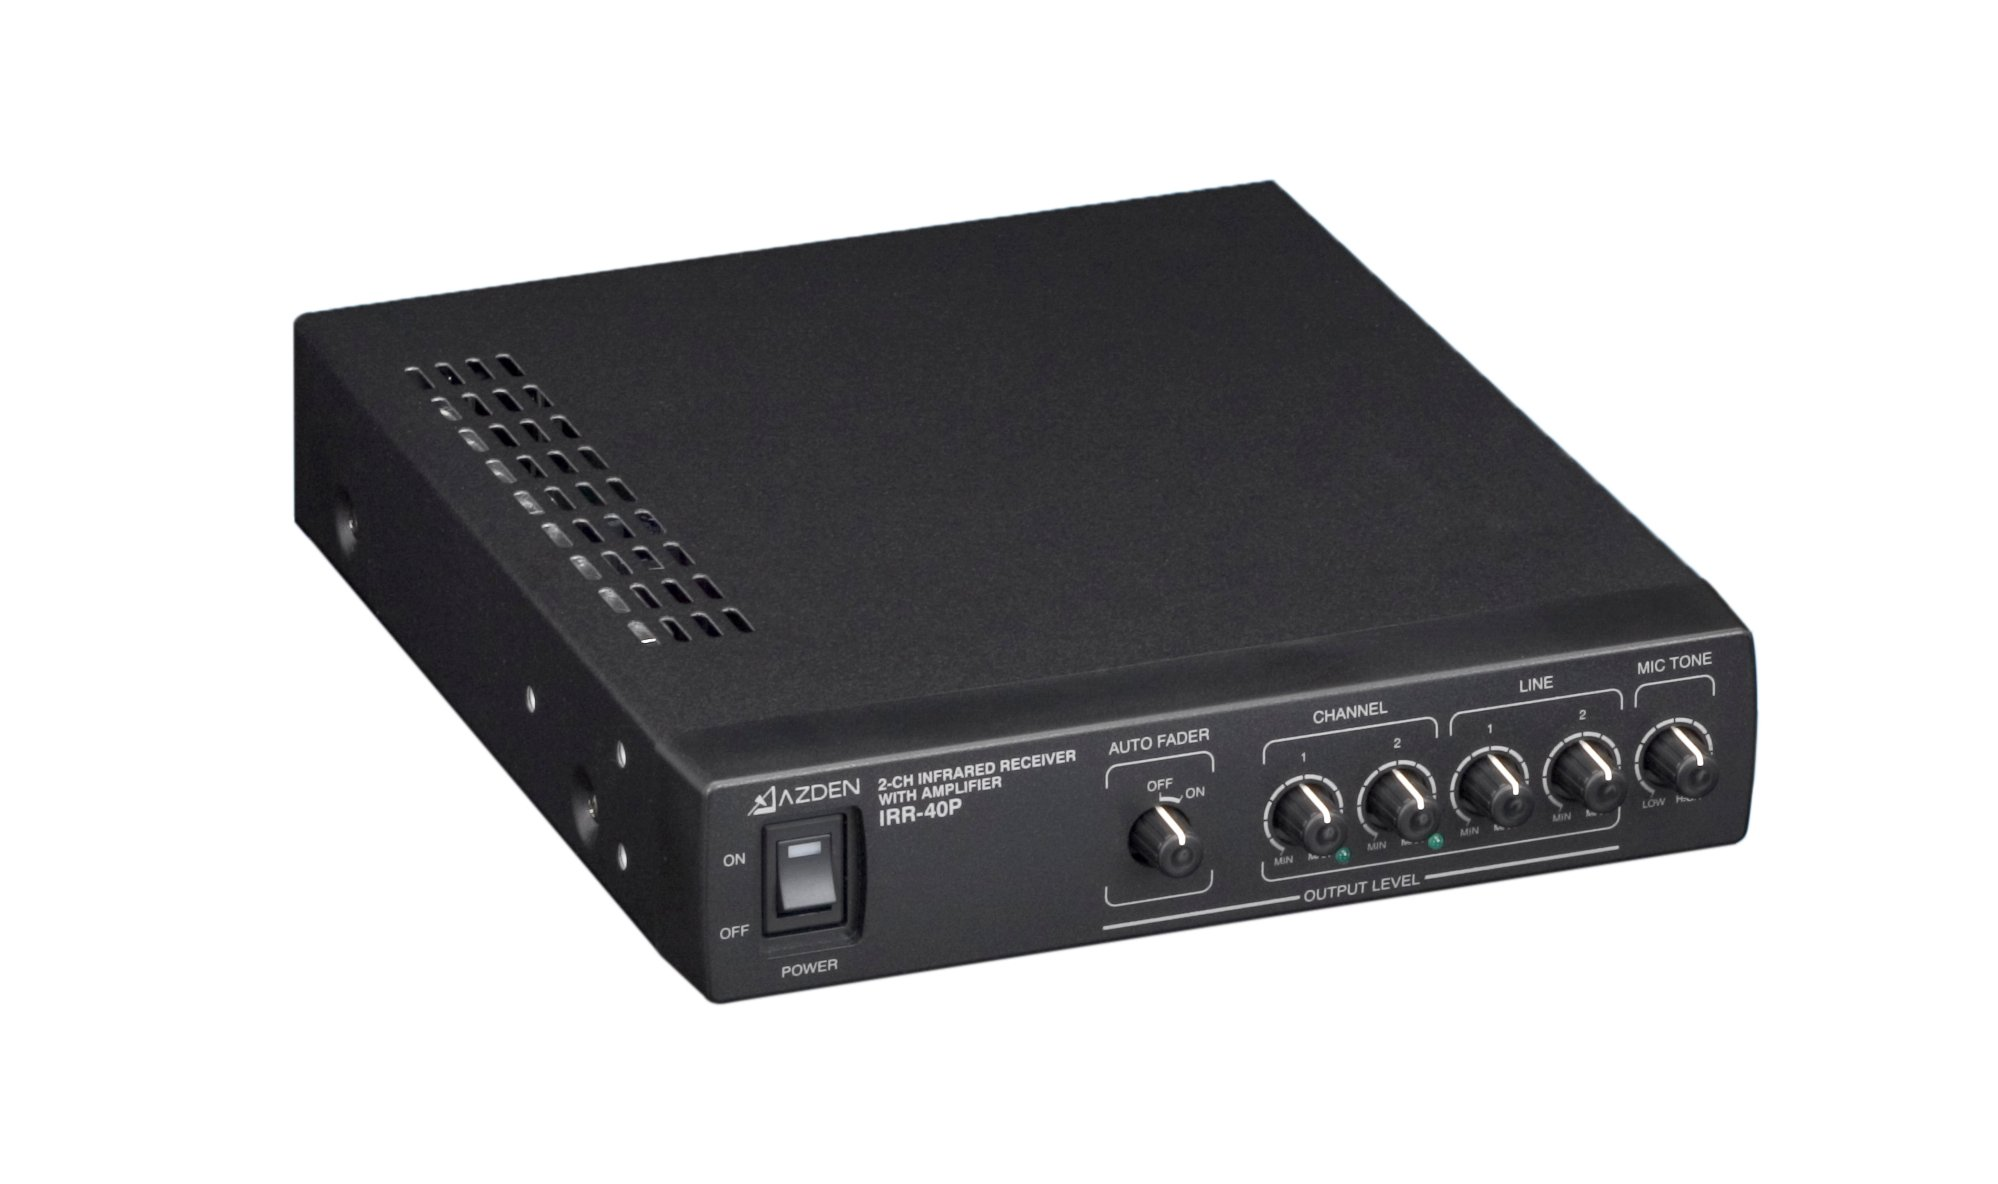 2-Channel IR Wireless Audio Receiver with Built-in Power Amp